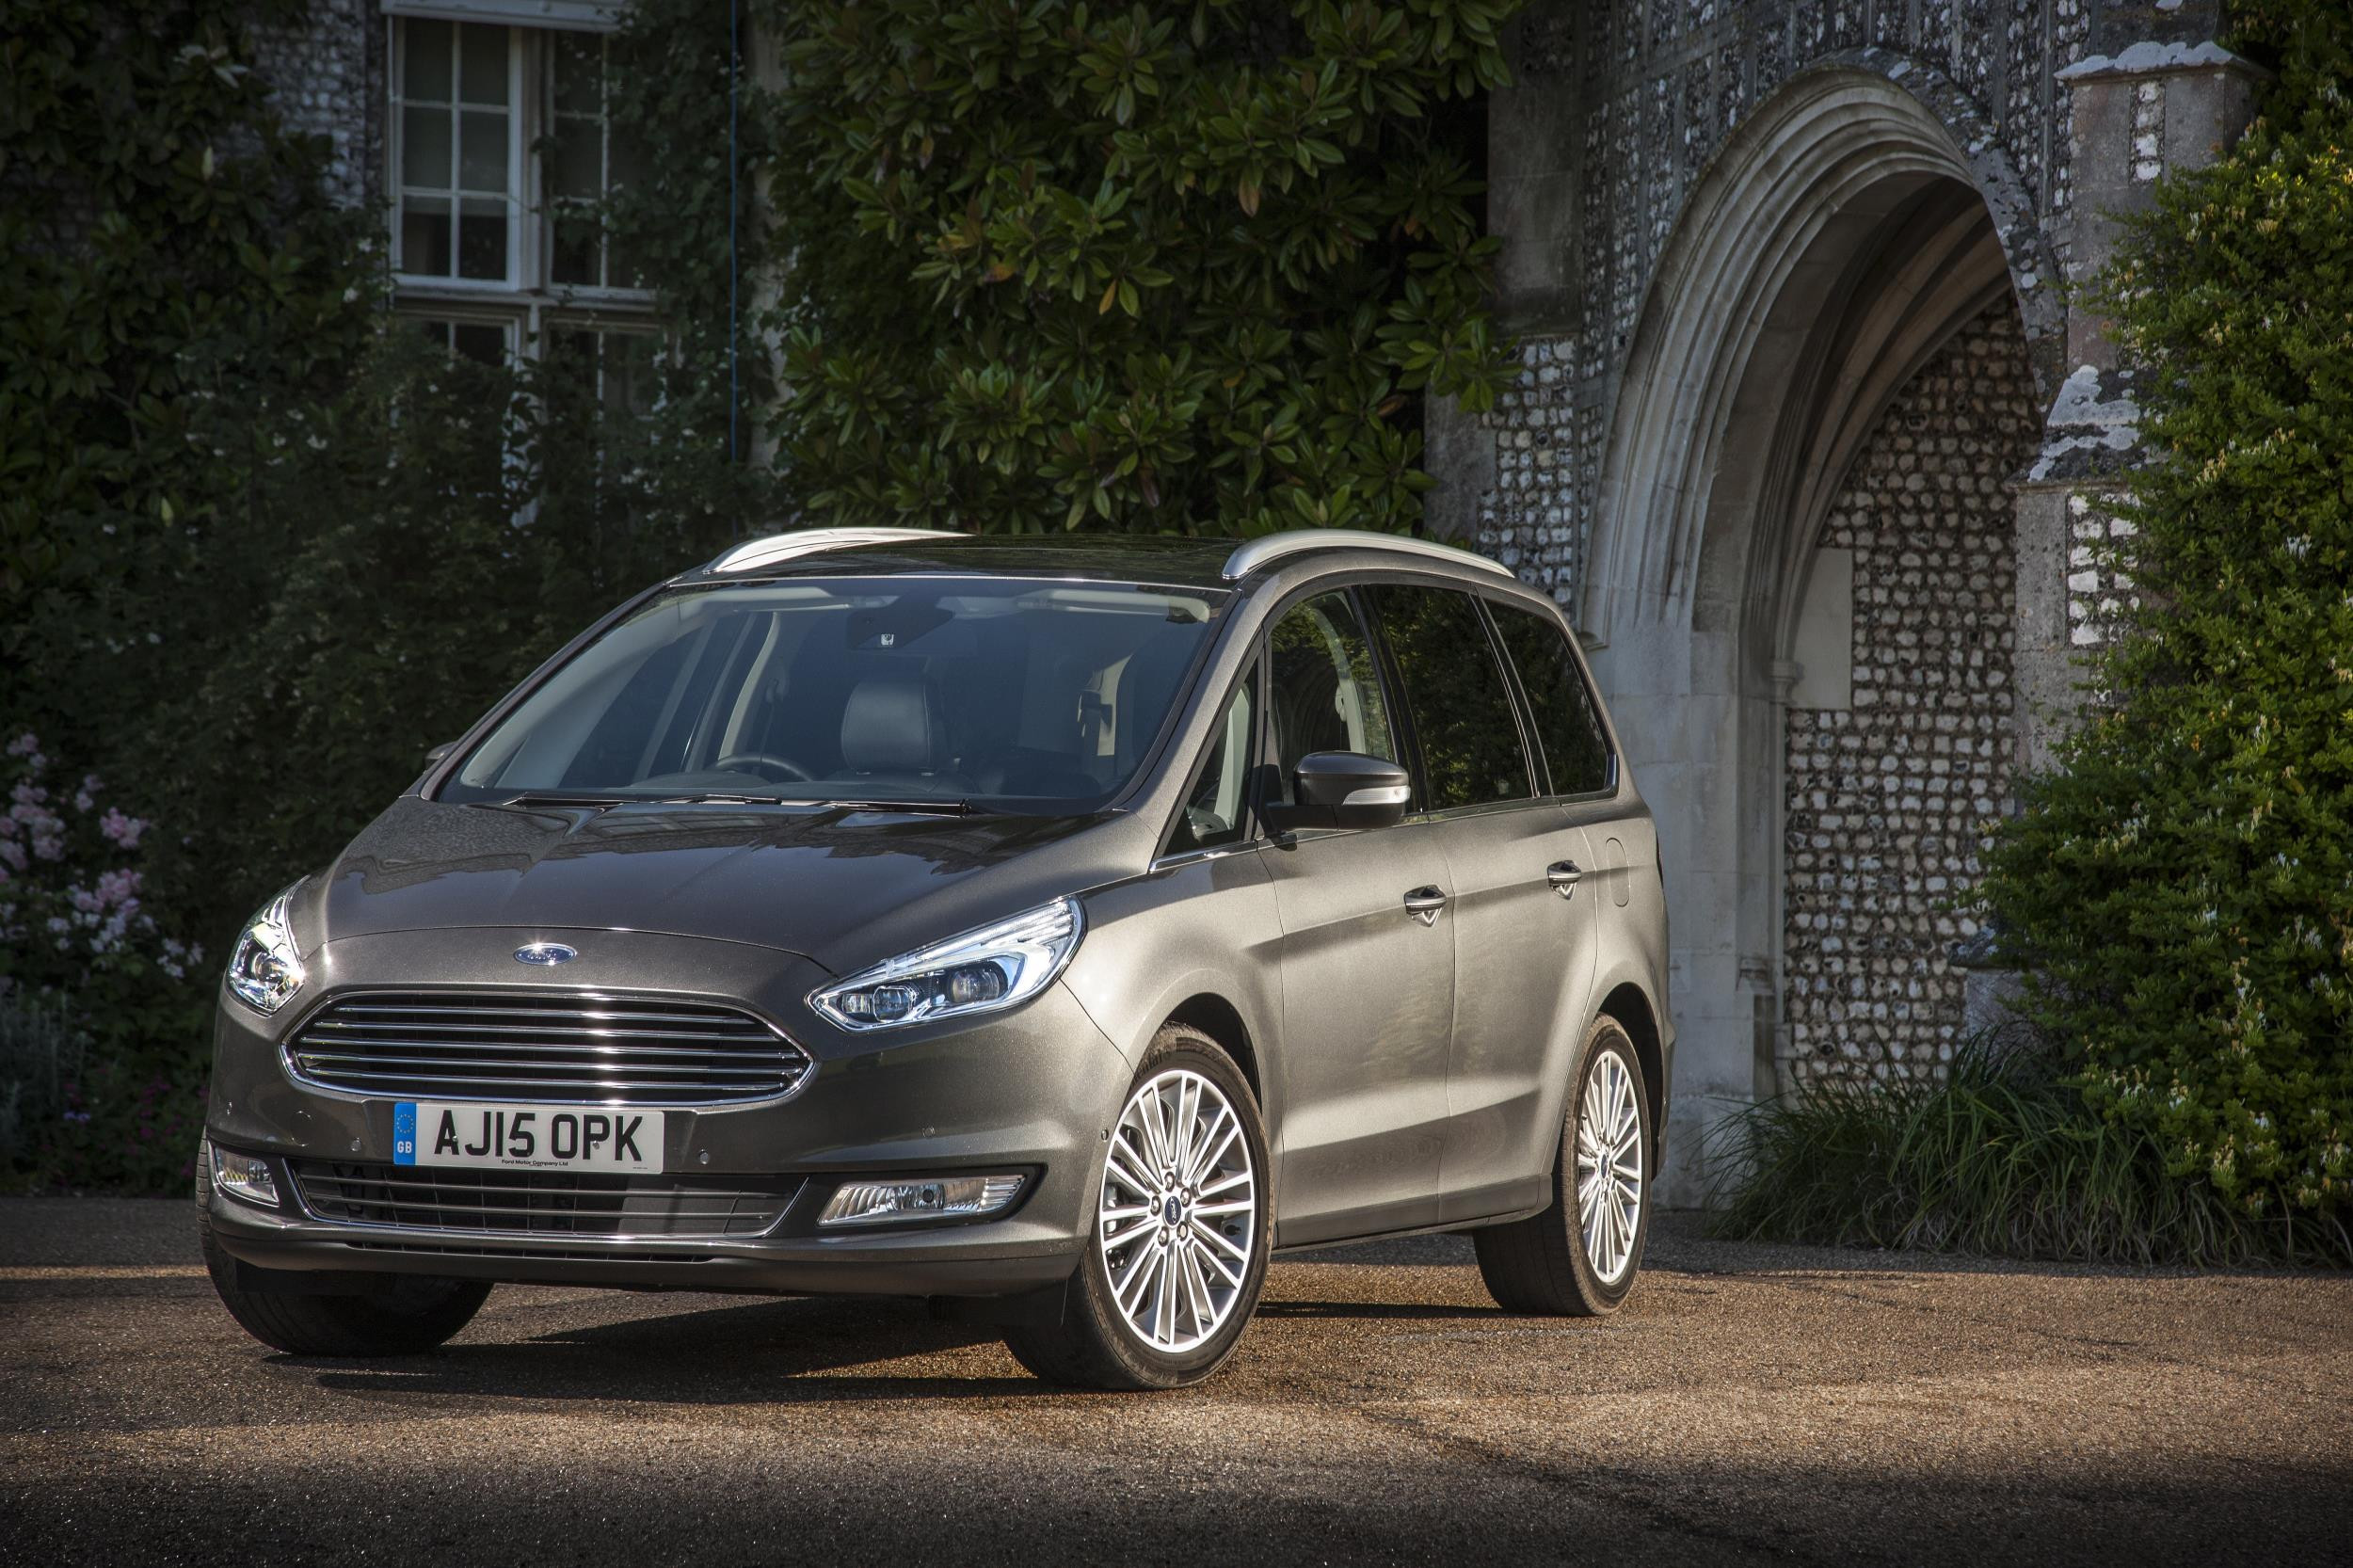 Grey Ford Galaxy parked three-quarters facing left in front of country house.